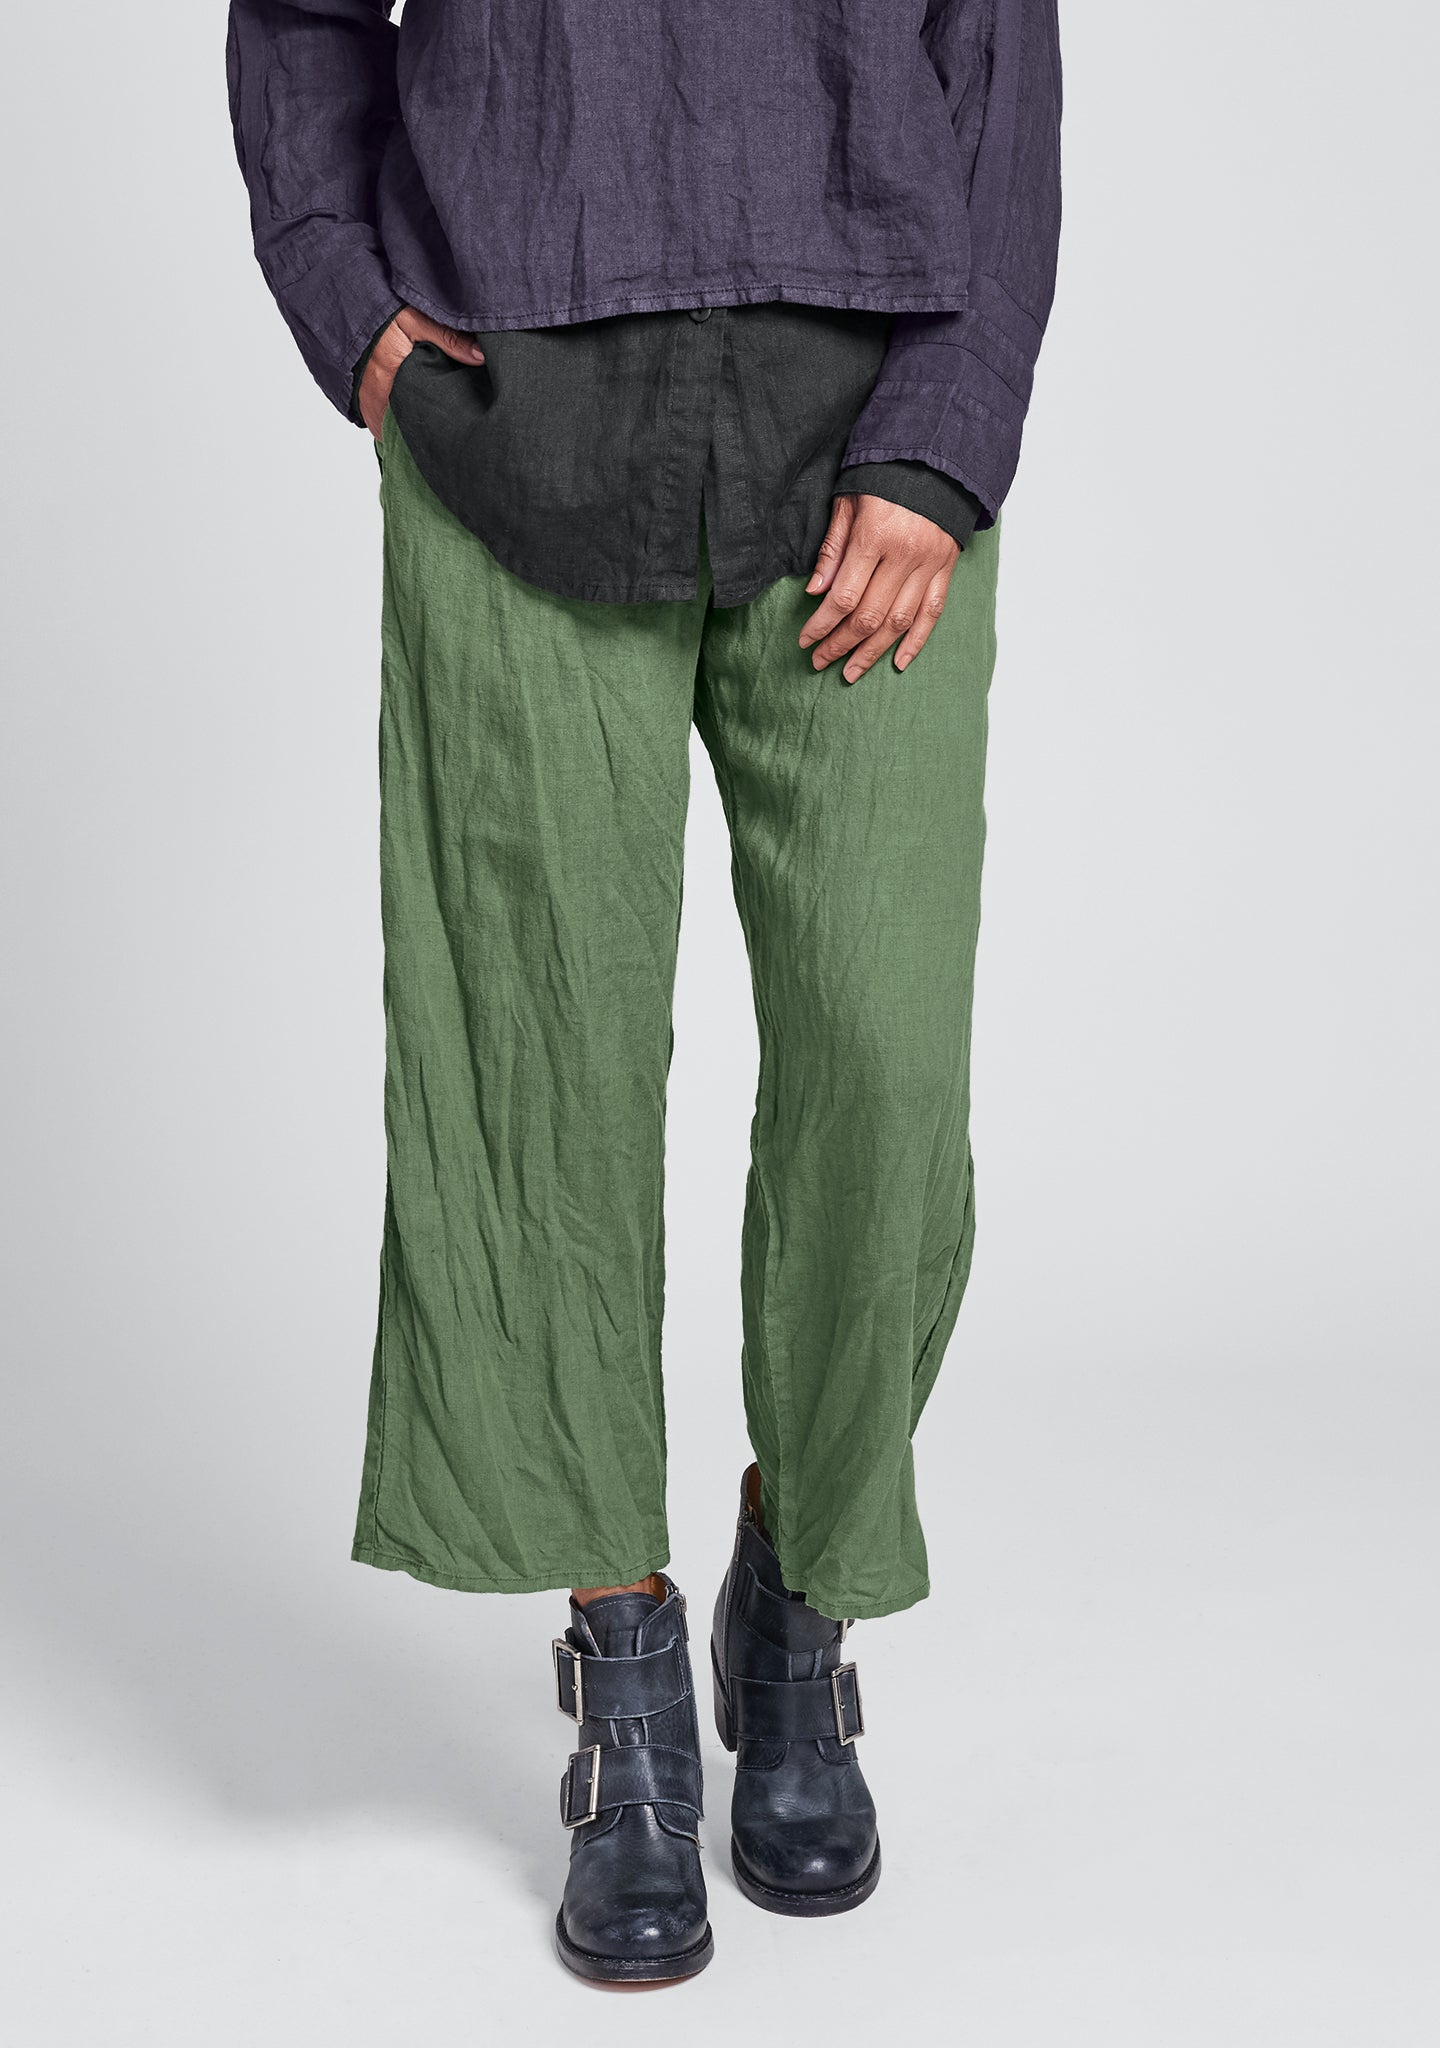 renewed flood linen drawstring pants green